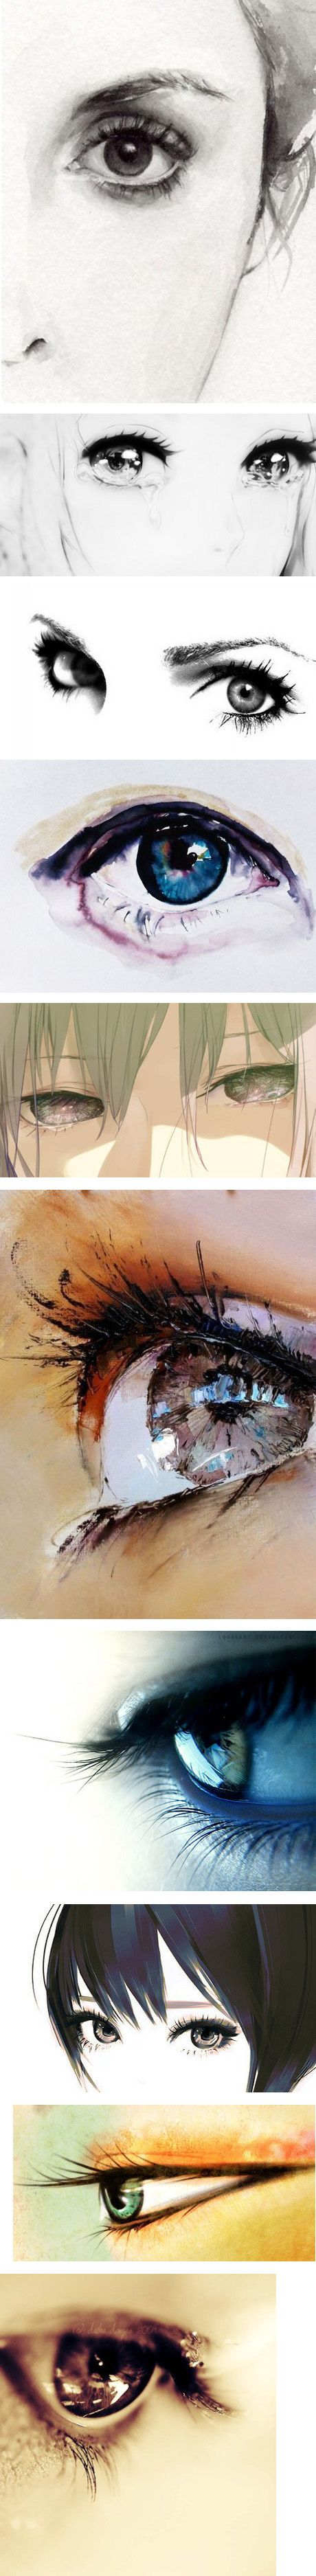 Water colour paintings